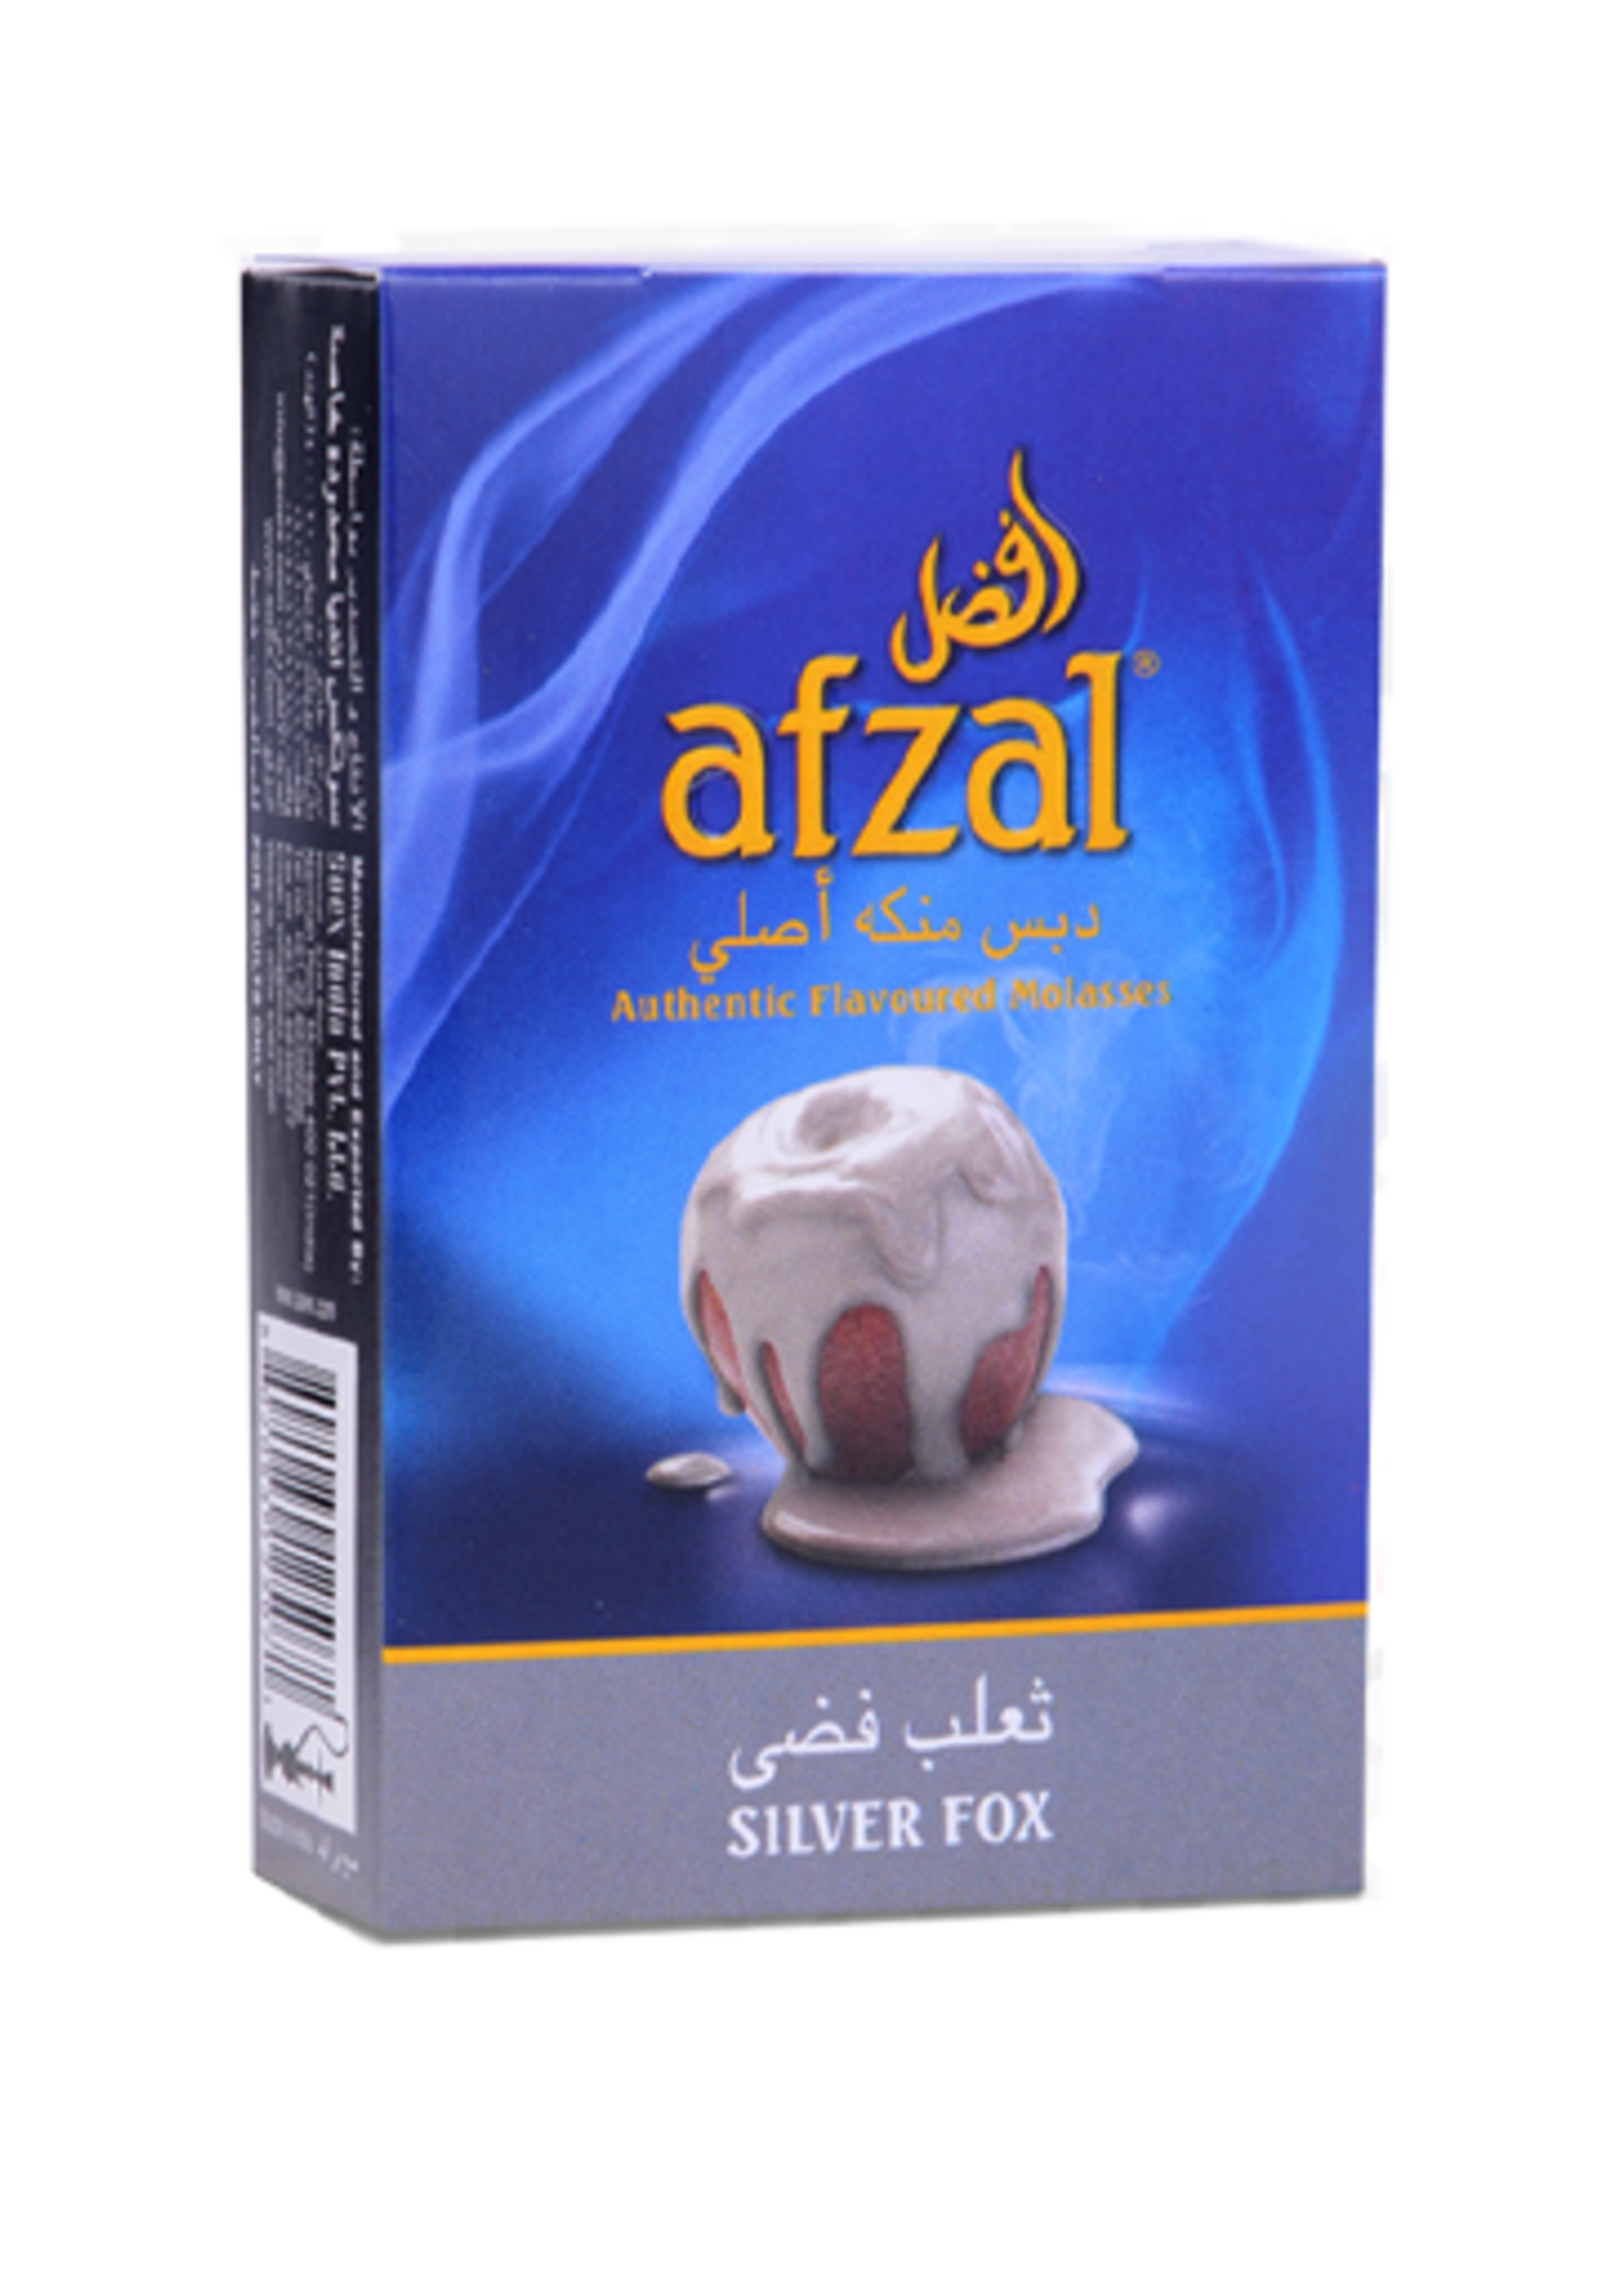 Afzal hubbly flavour - silver fox